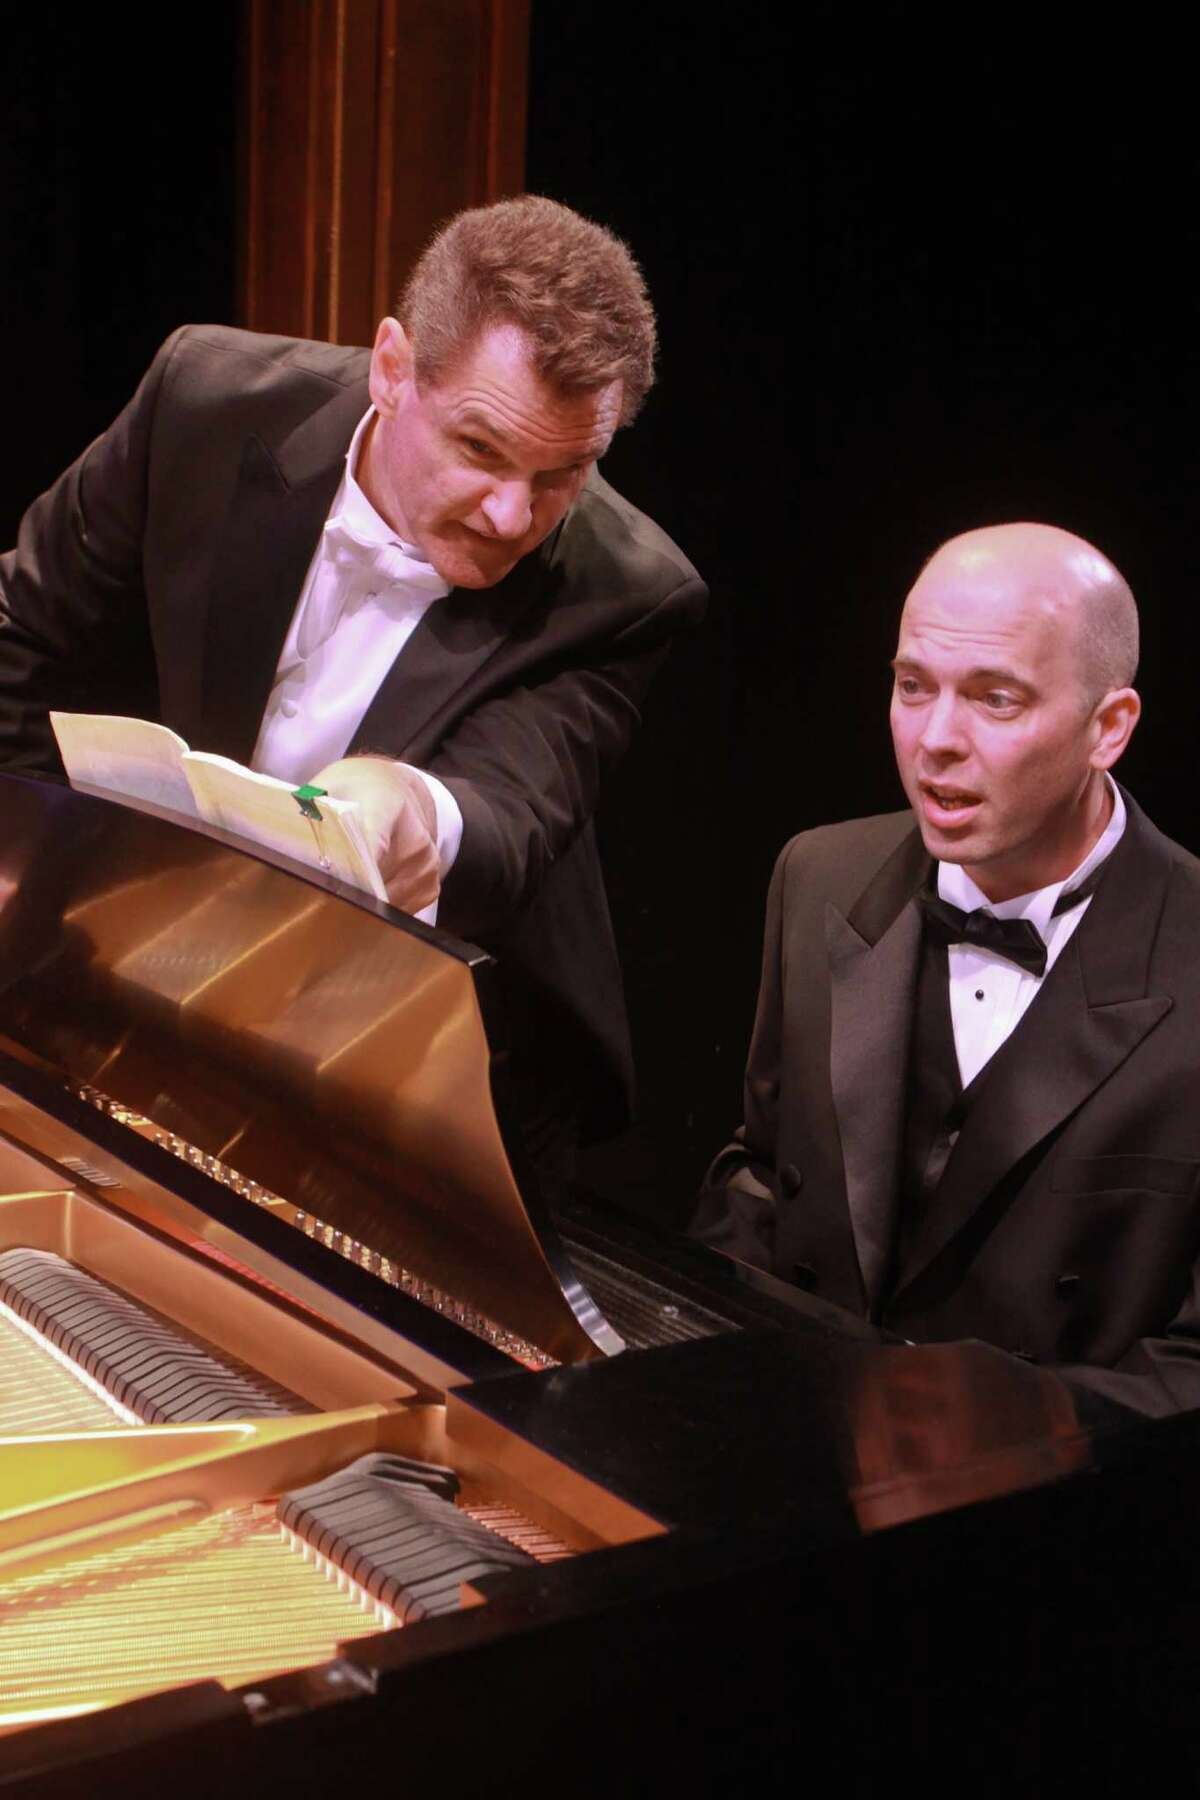 """(For the Chronicle/Gary Fountain, September 2, 2012) Jeffrey Rockwell as Richard, left, and Tom Frey as Ted, in this scene from Stages' production """"2 Pianos 4 Hands."""""""